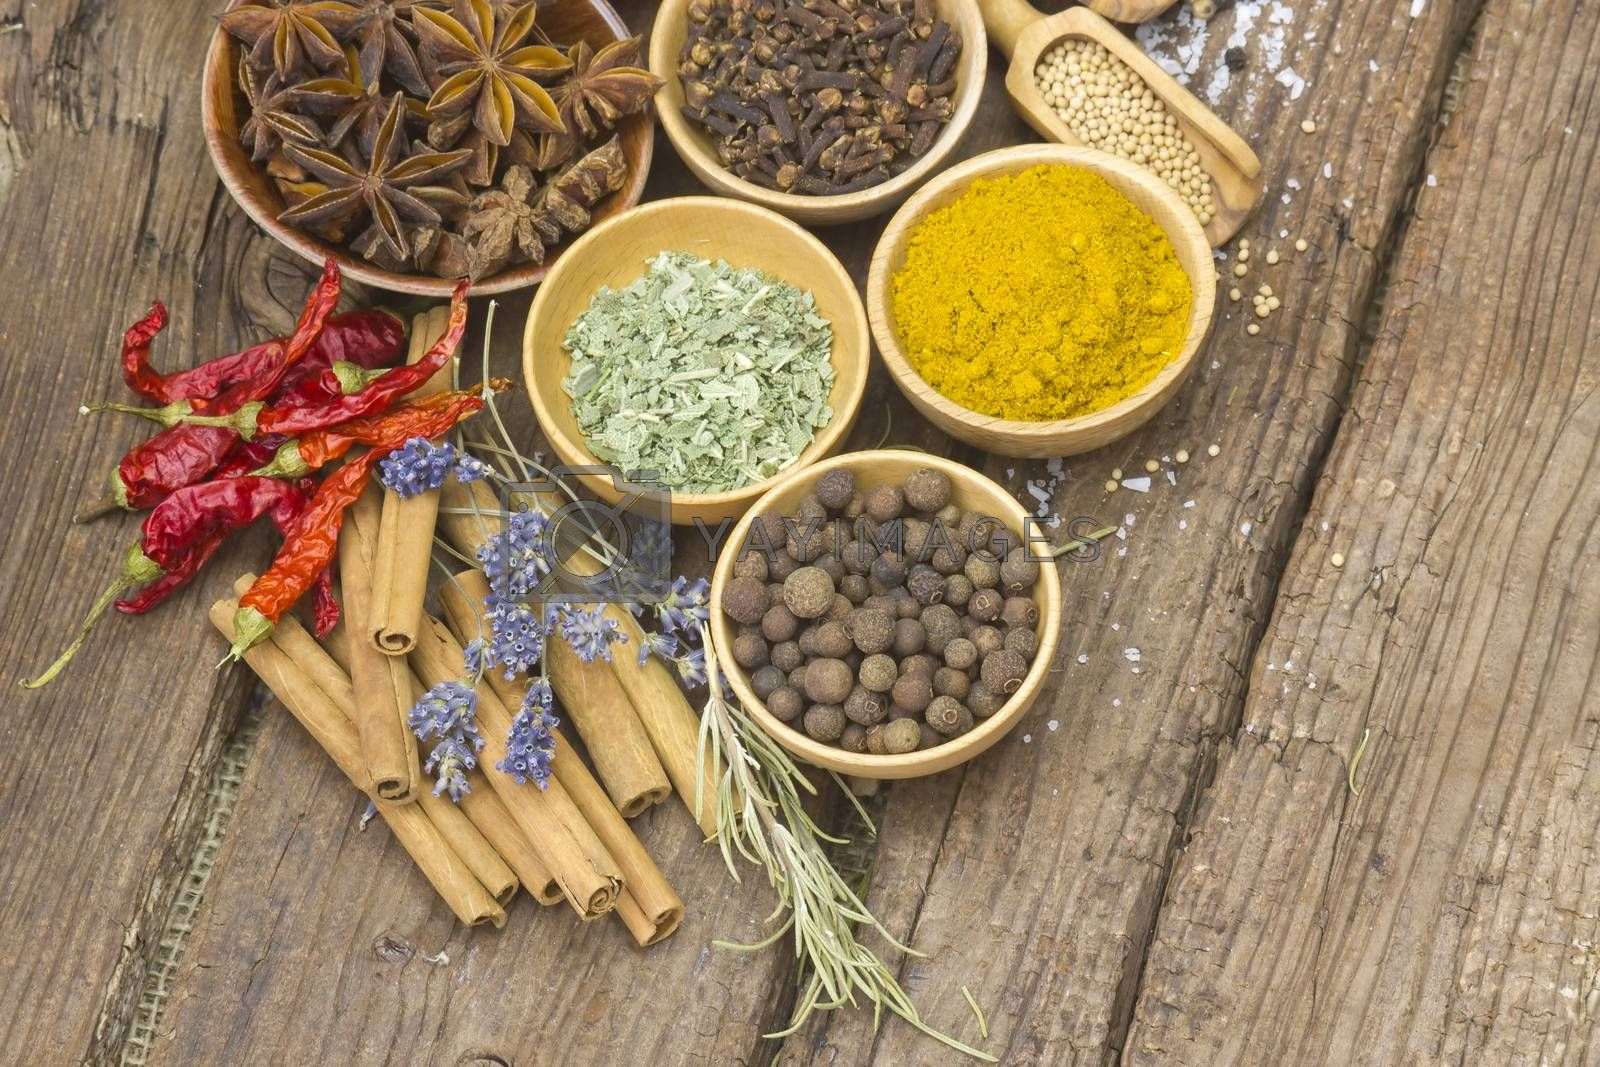 Variety of spices on wooden background